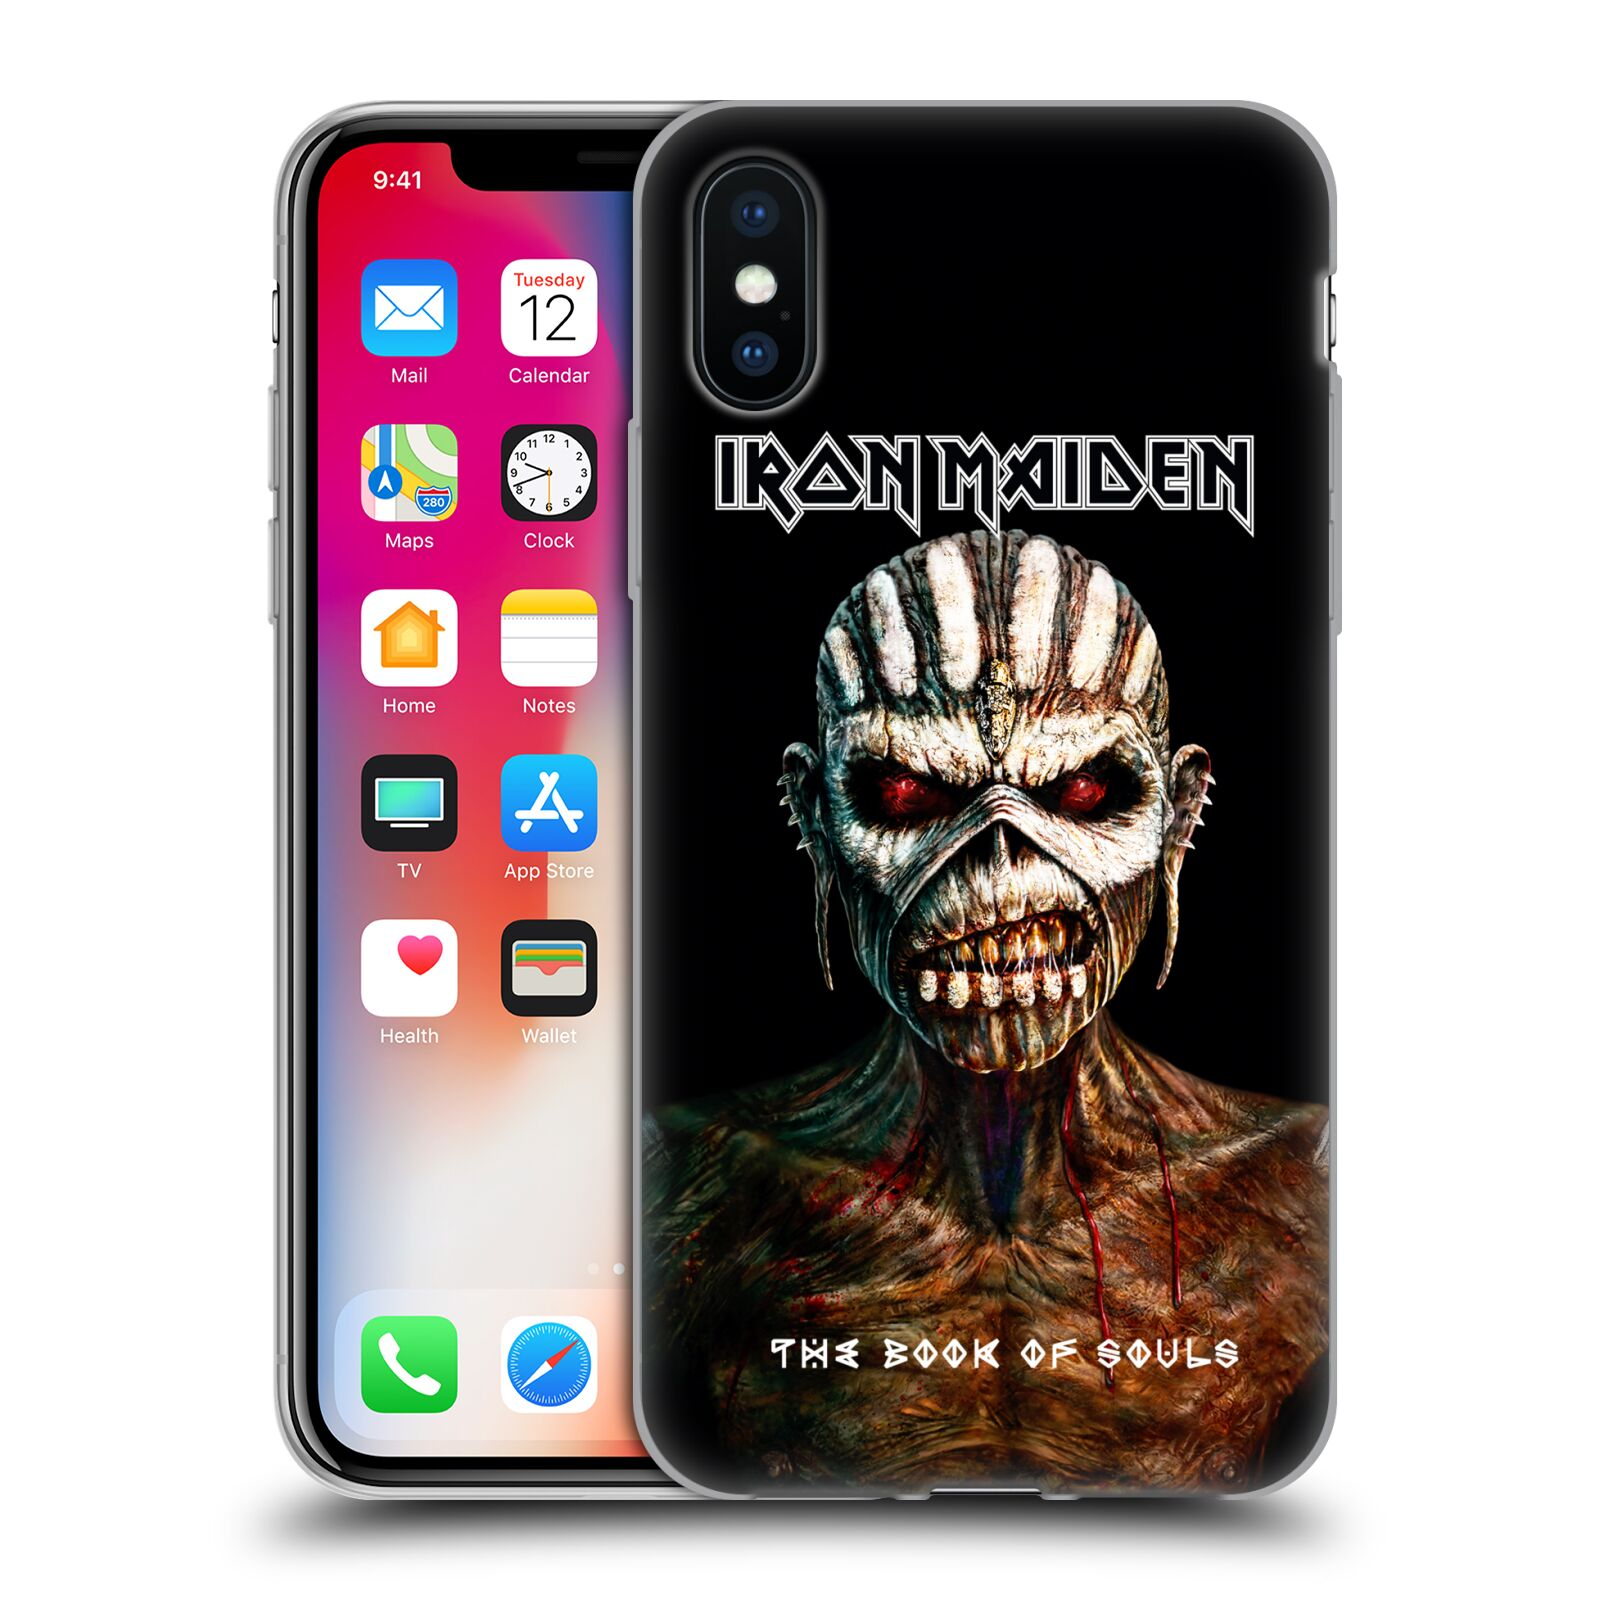 Silikonové pouzdro na mobil Apple iPhone XS - Head Case - Iron Maiden - The Book Of Souls